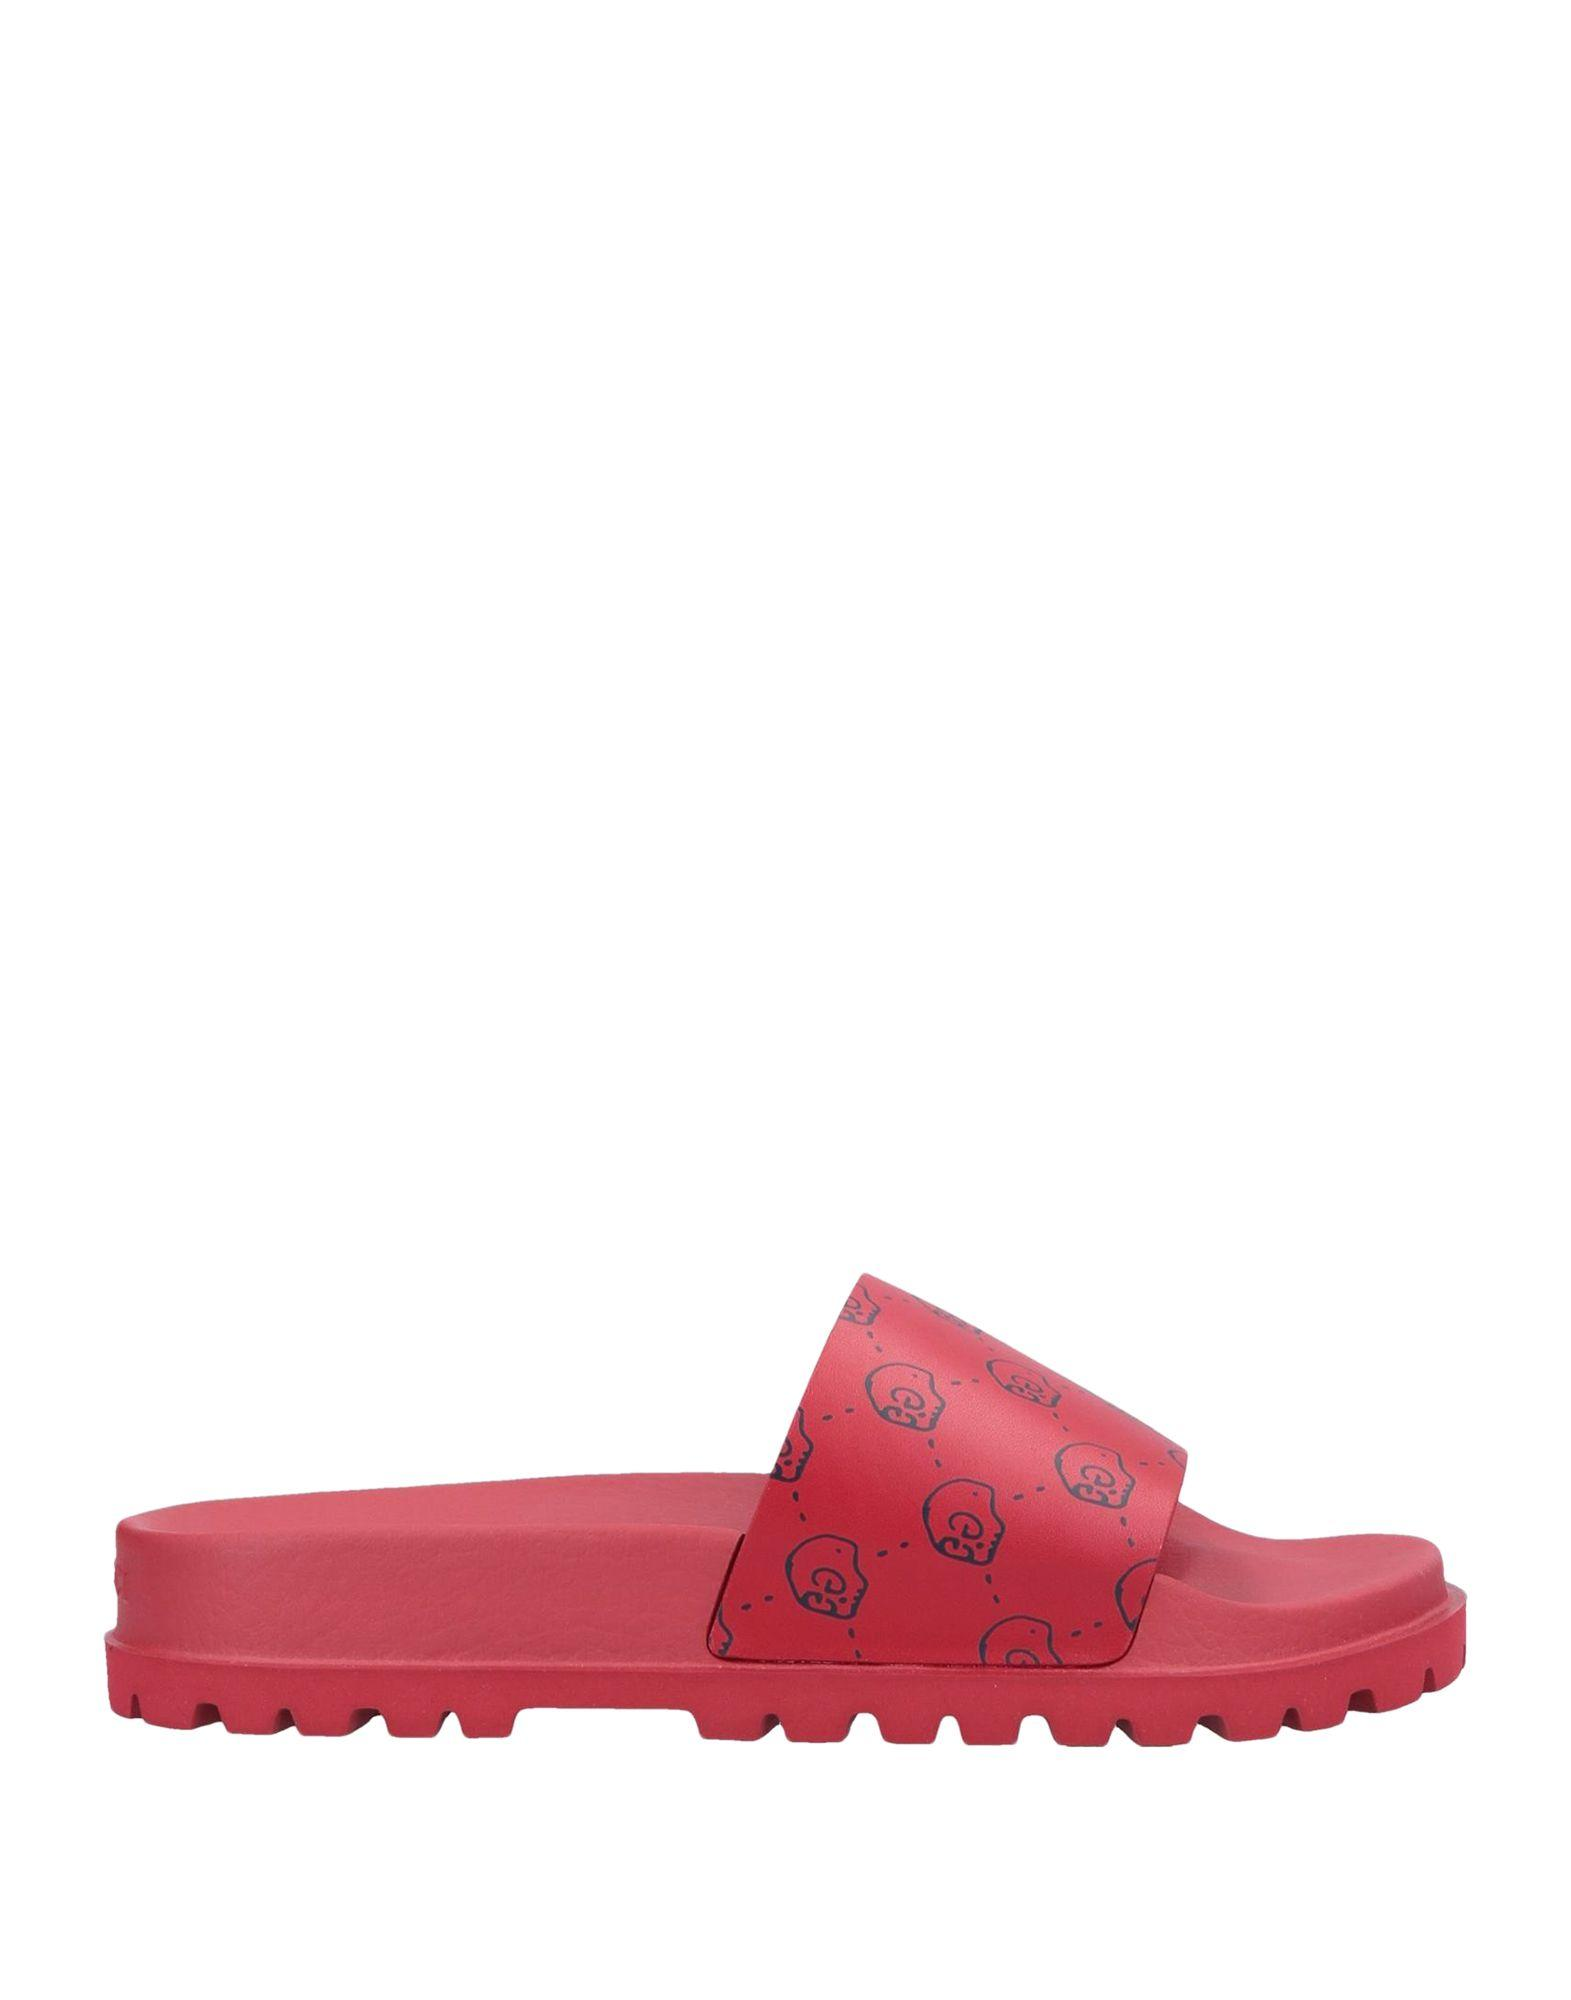 2fa84bba8d2 Gucci Sandals in Red for Men - Lyst